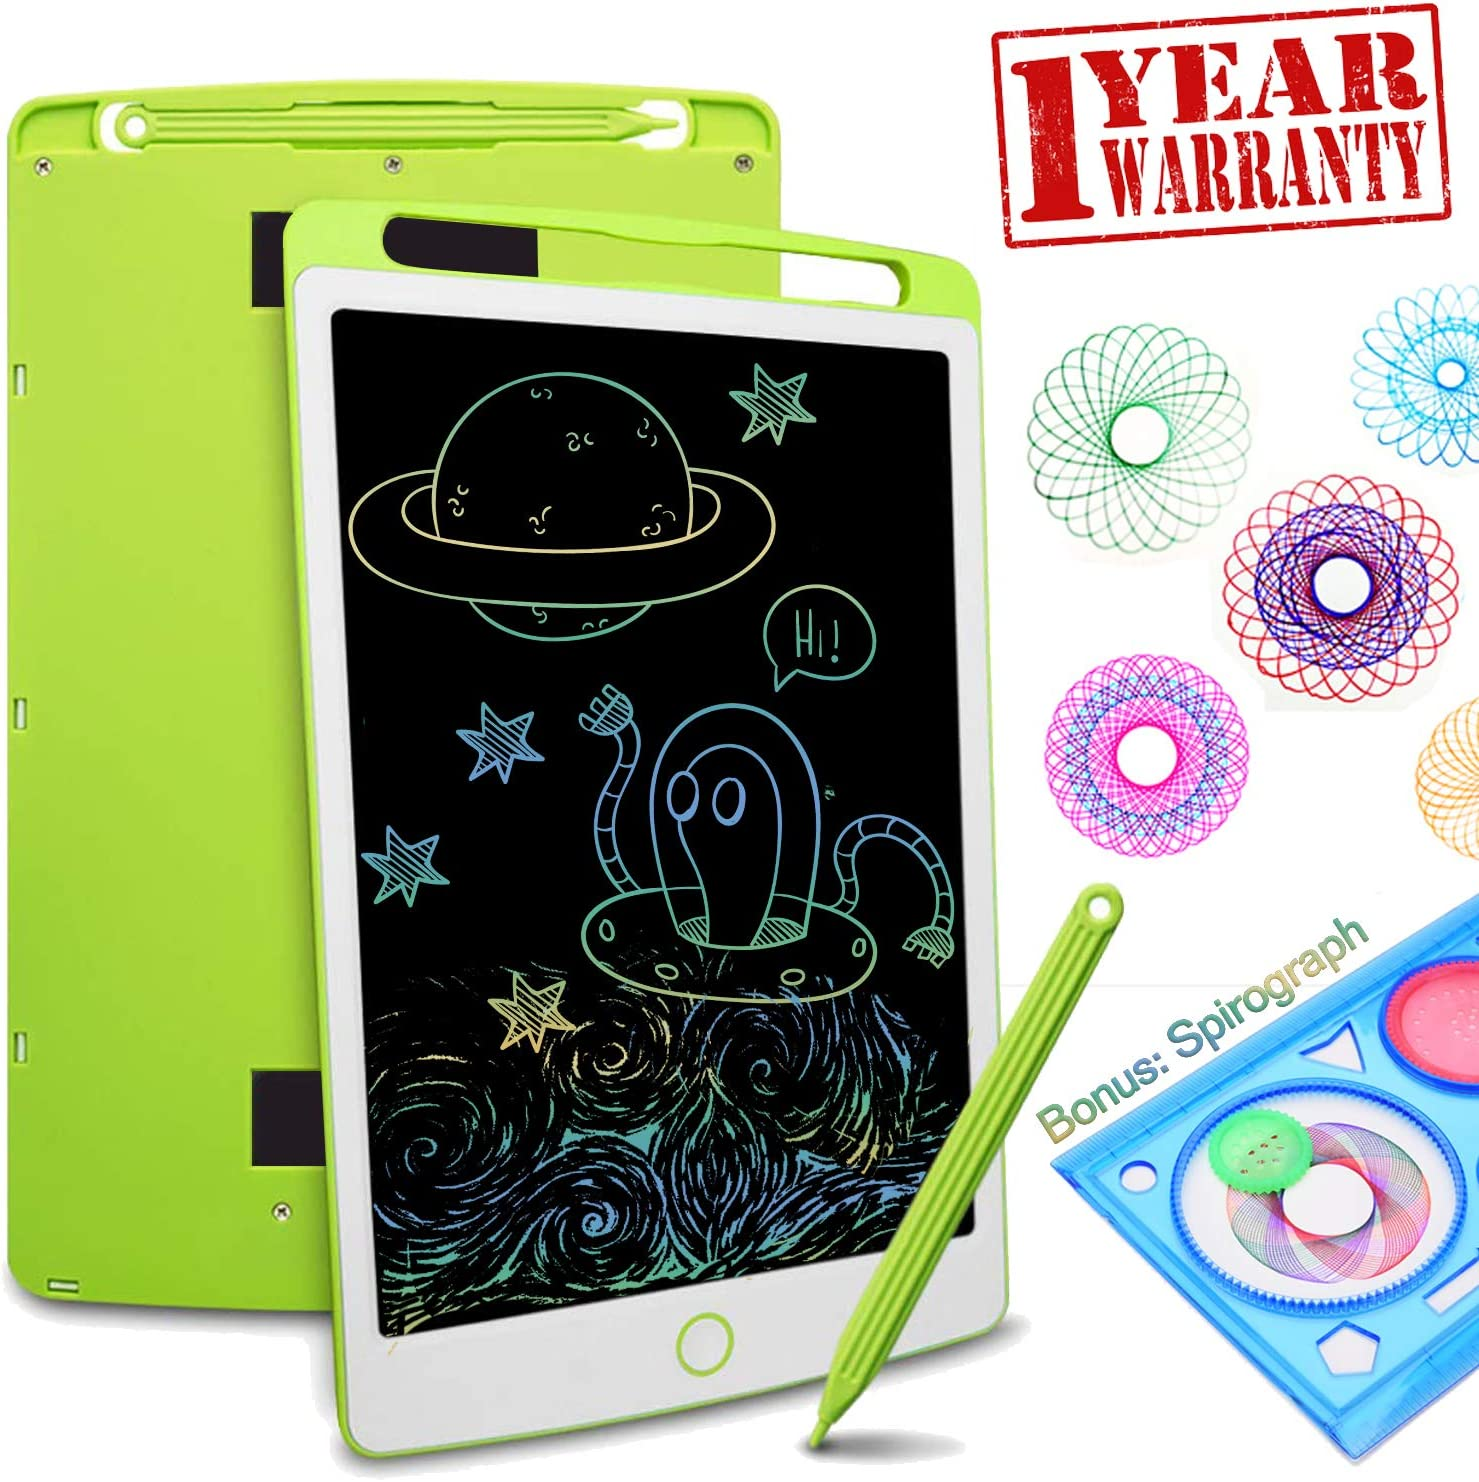 10 inch Portable Mini Tablet Electronic Painting Board Intelligent Graffiti Board Childrens Painting Gift Educational Toys Early Education Painting Message Board Childrens LCD Writing Board